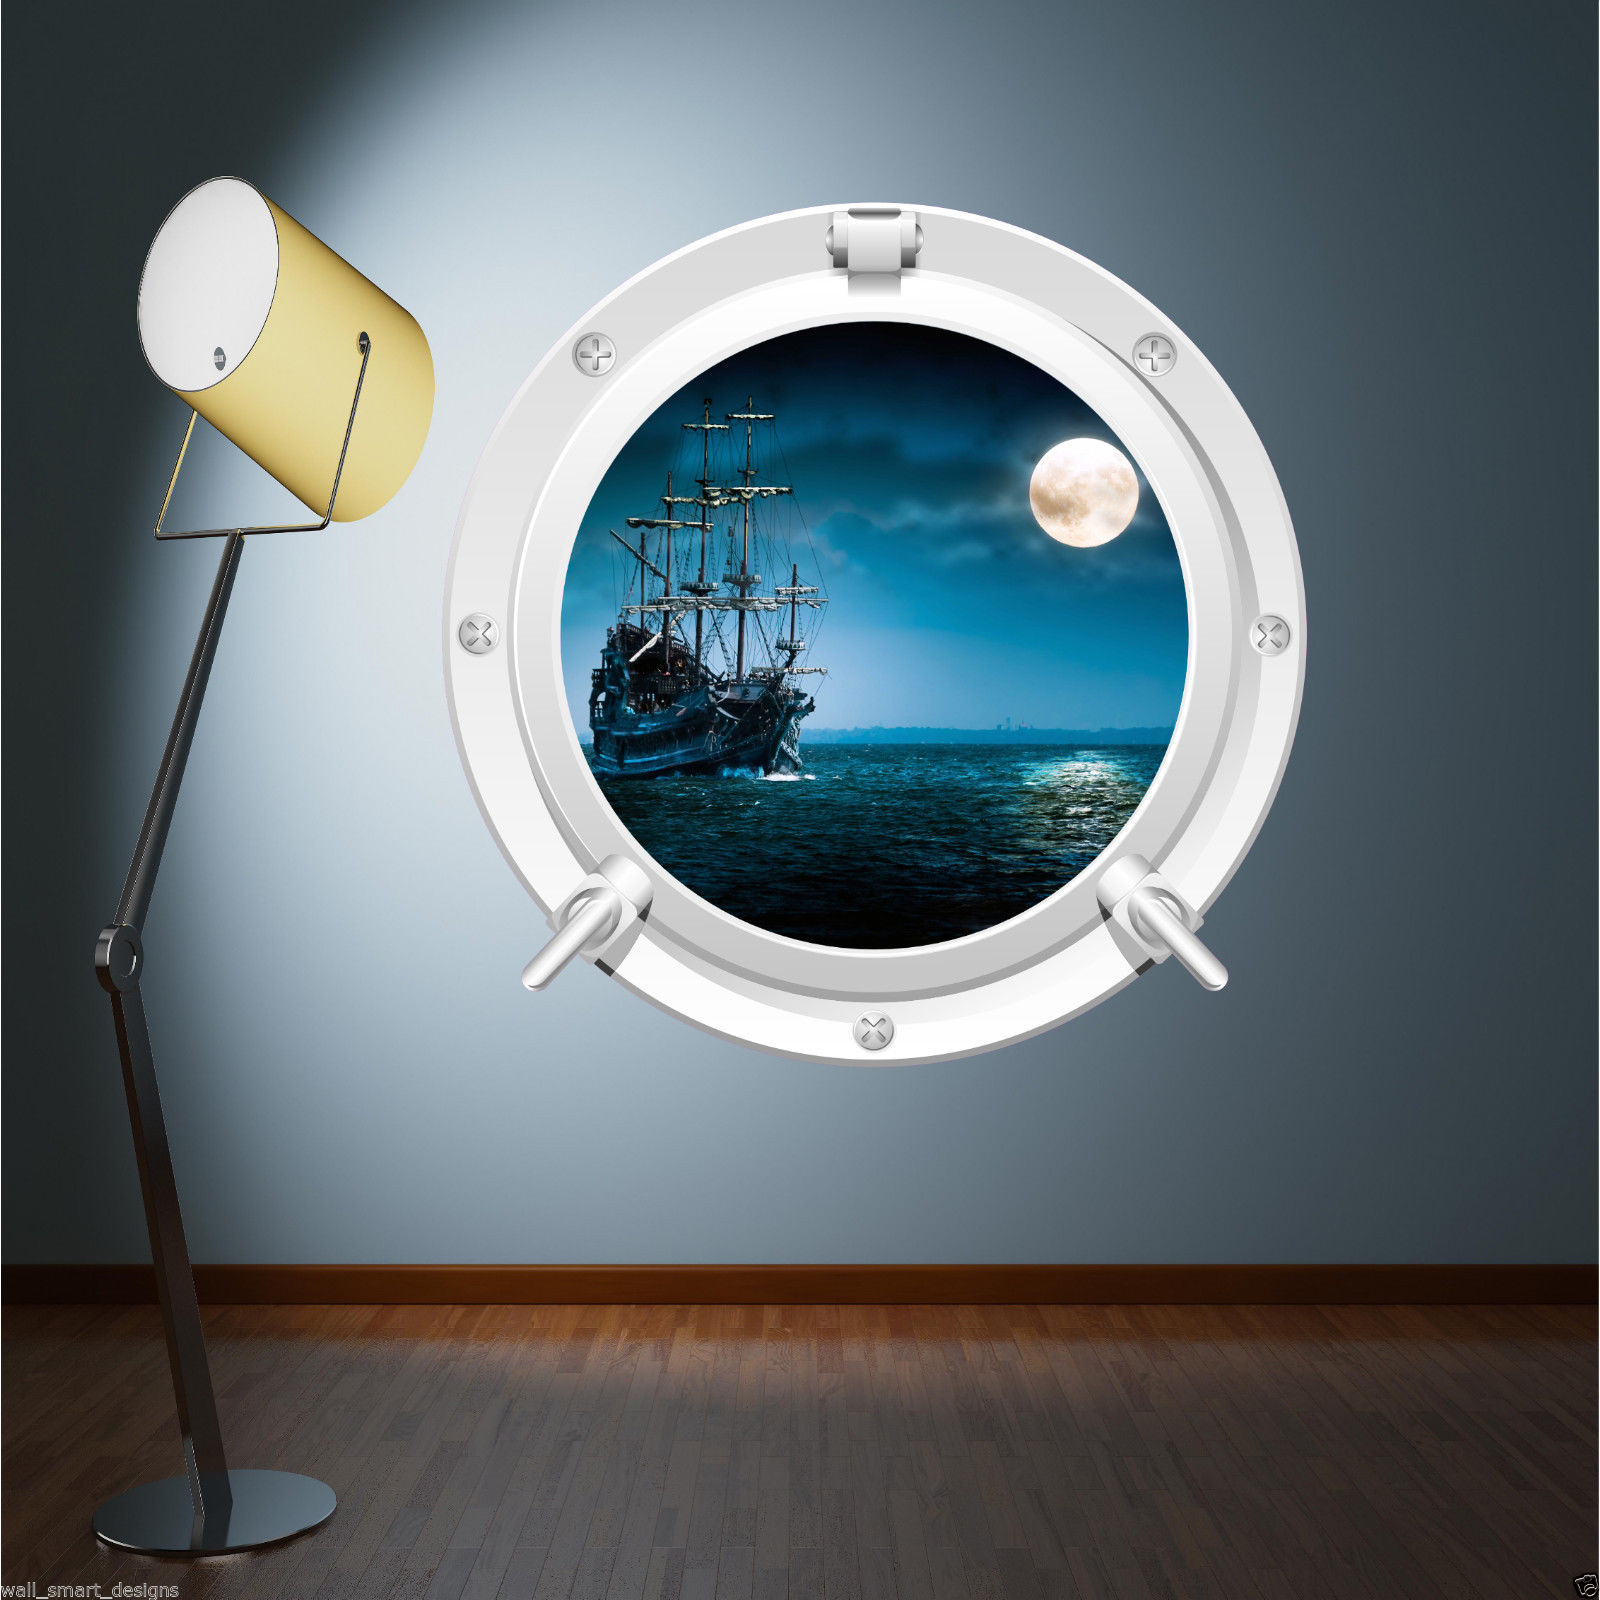 FULL COLOUR PIRATE SHIP SEA PORTHOLE WALL STICKER KIDS BEDROOM BATHROOM  DECAL. Sea Wall Stickers   eBay